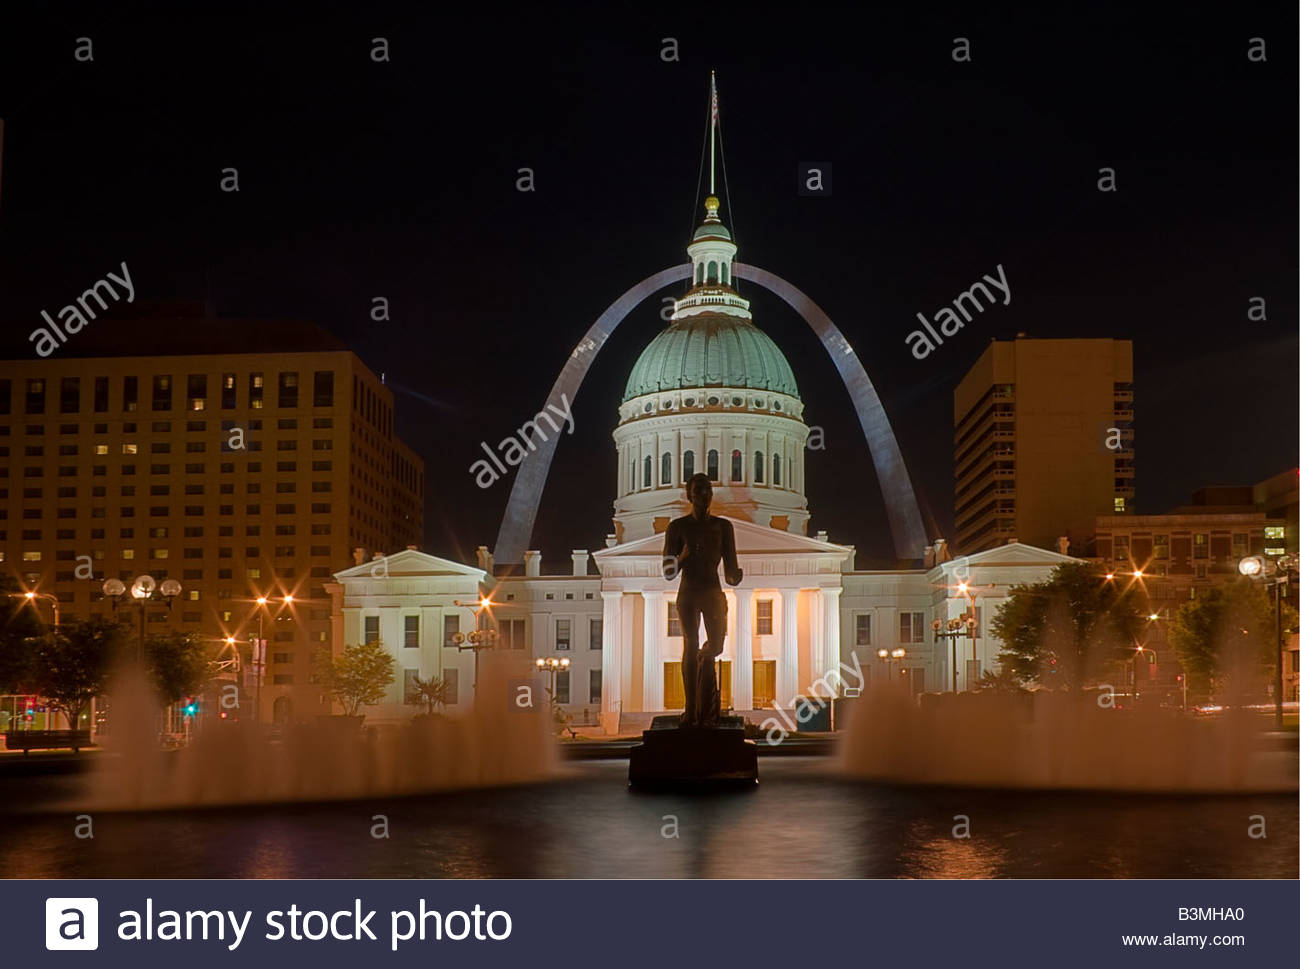 St Louis old court house at night with arch in the background 1300x969